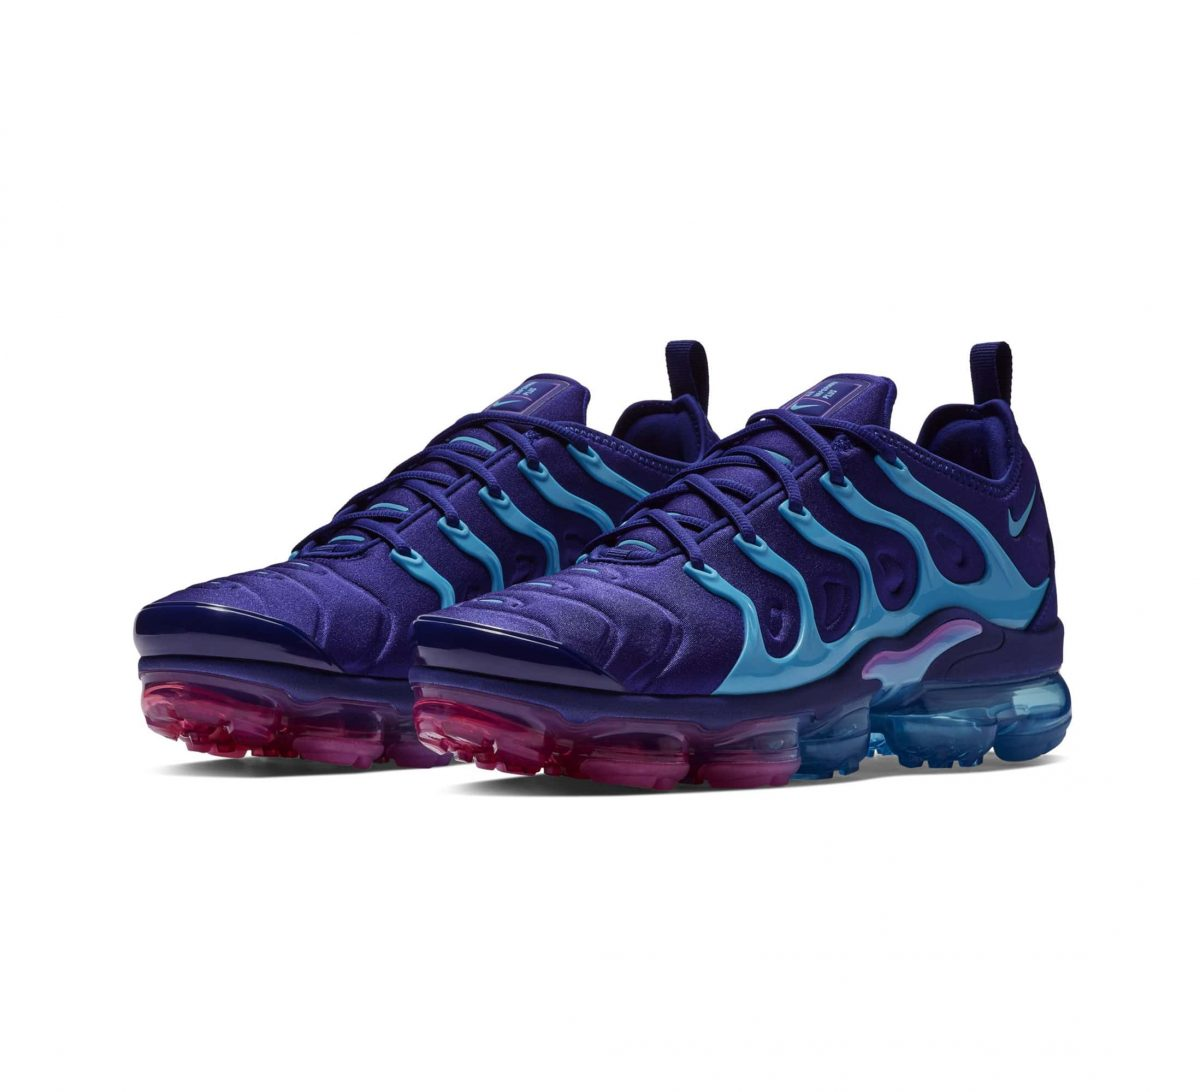 online retailer a5ee5 a82f8 Purple and Pink Hit the Plus - HOUSE OF HEAT | Sneaker News ...